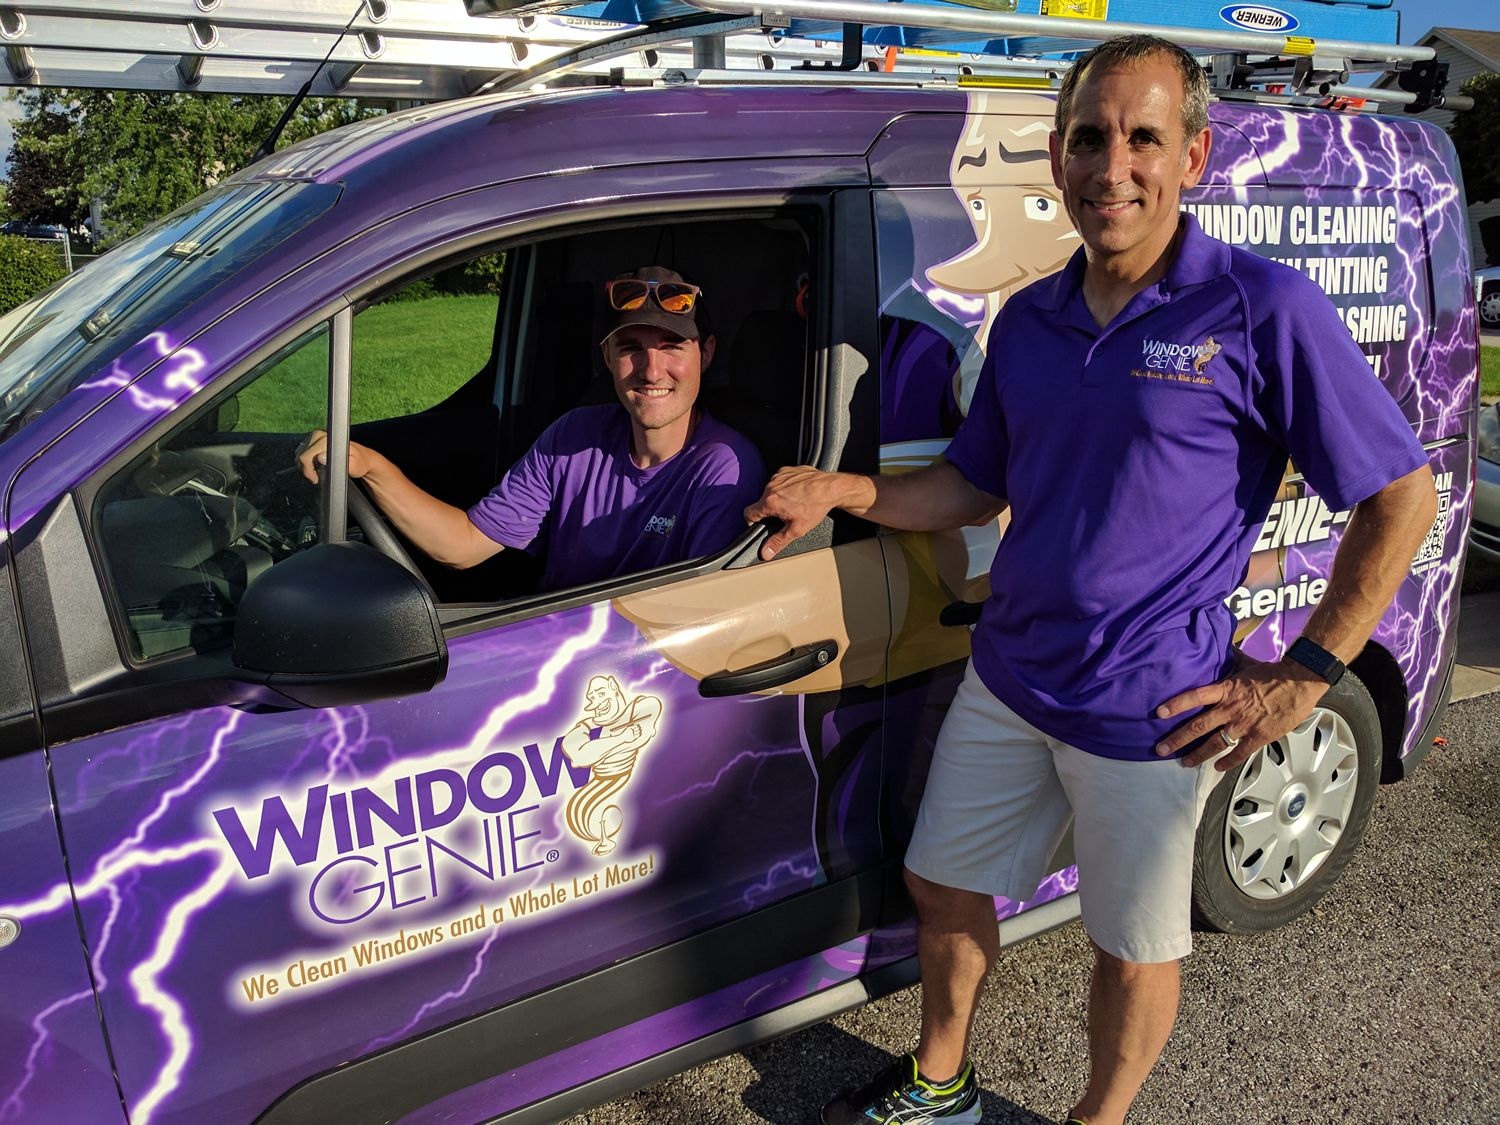 From Fast Food to Clean Windows, This Franchise Maven Chooses Solid Business to Build with Son